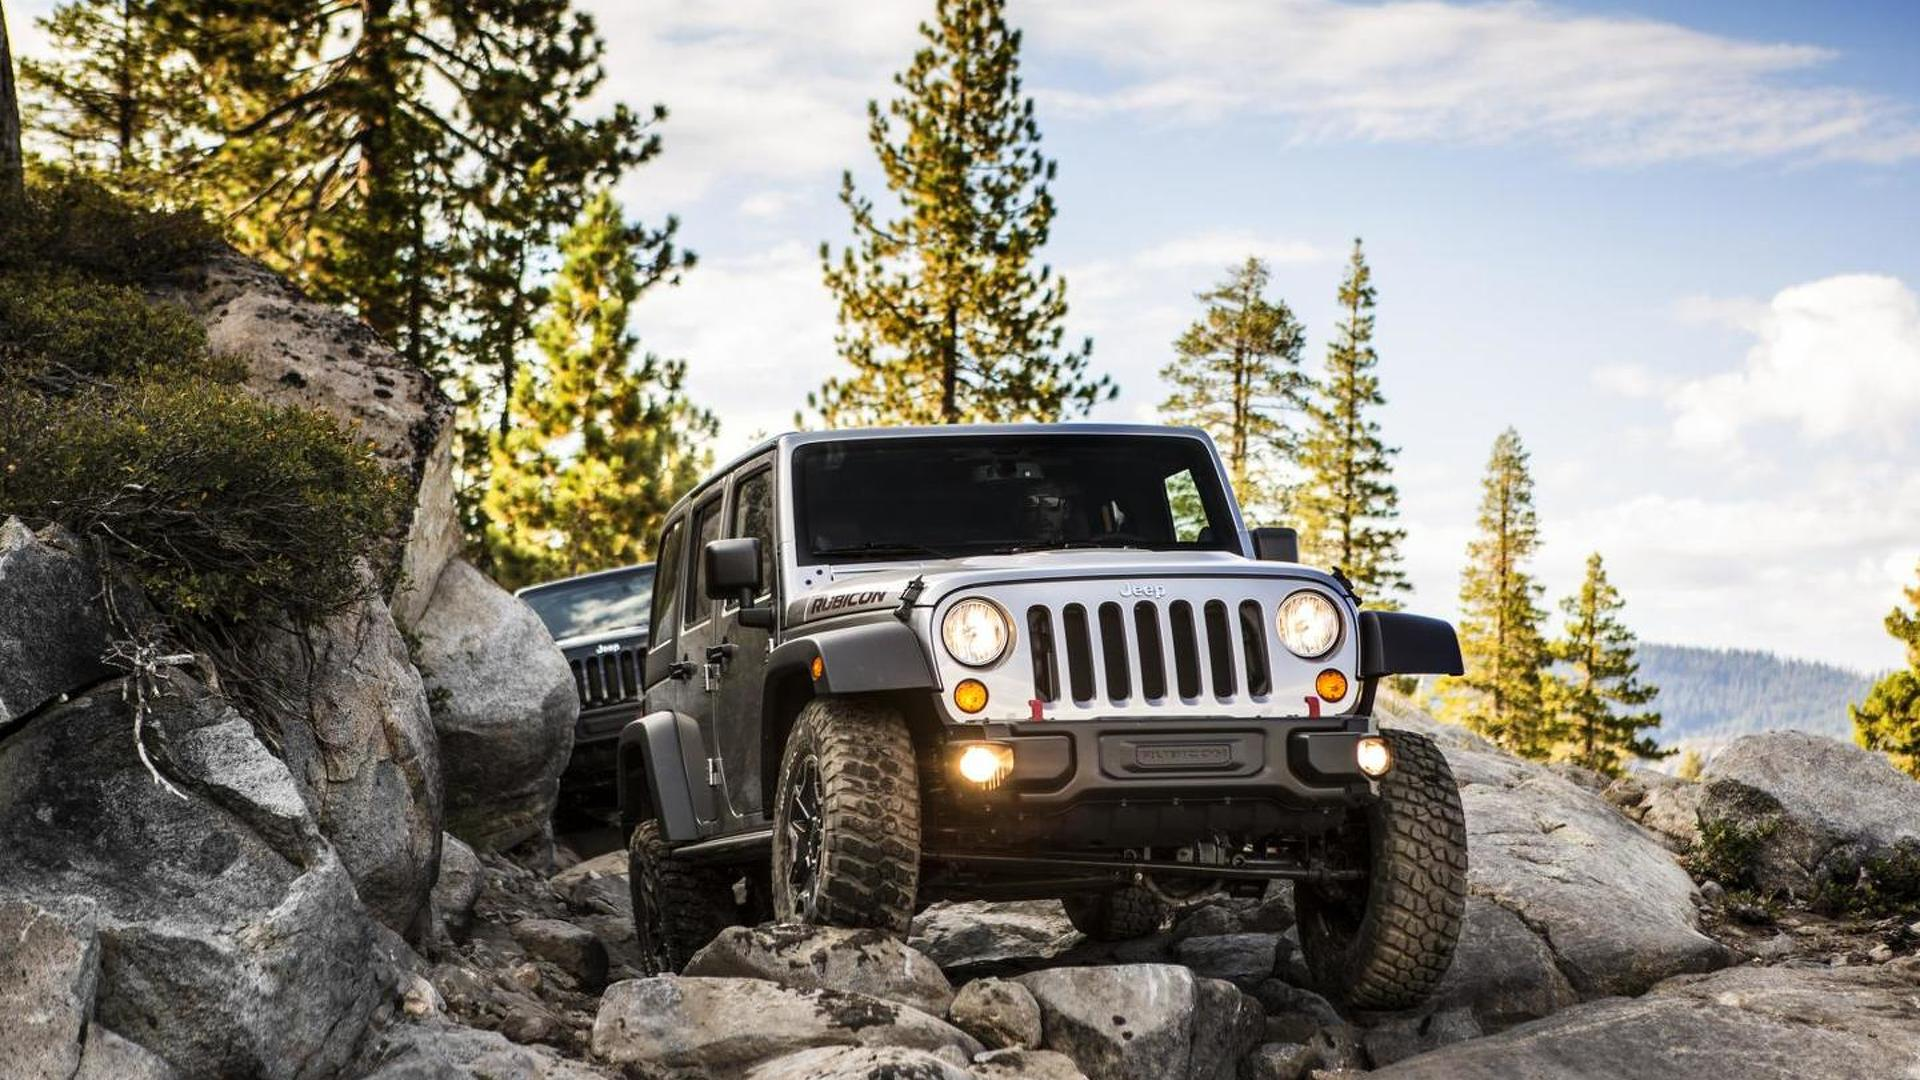 Jeep Wrangler Rubicon 10th Anniversary Edition announced